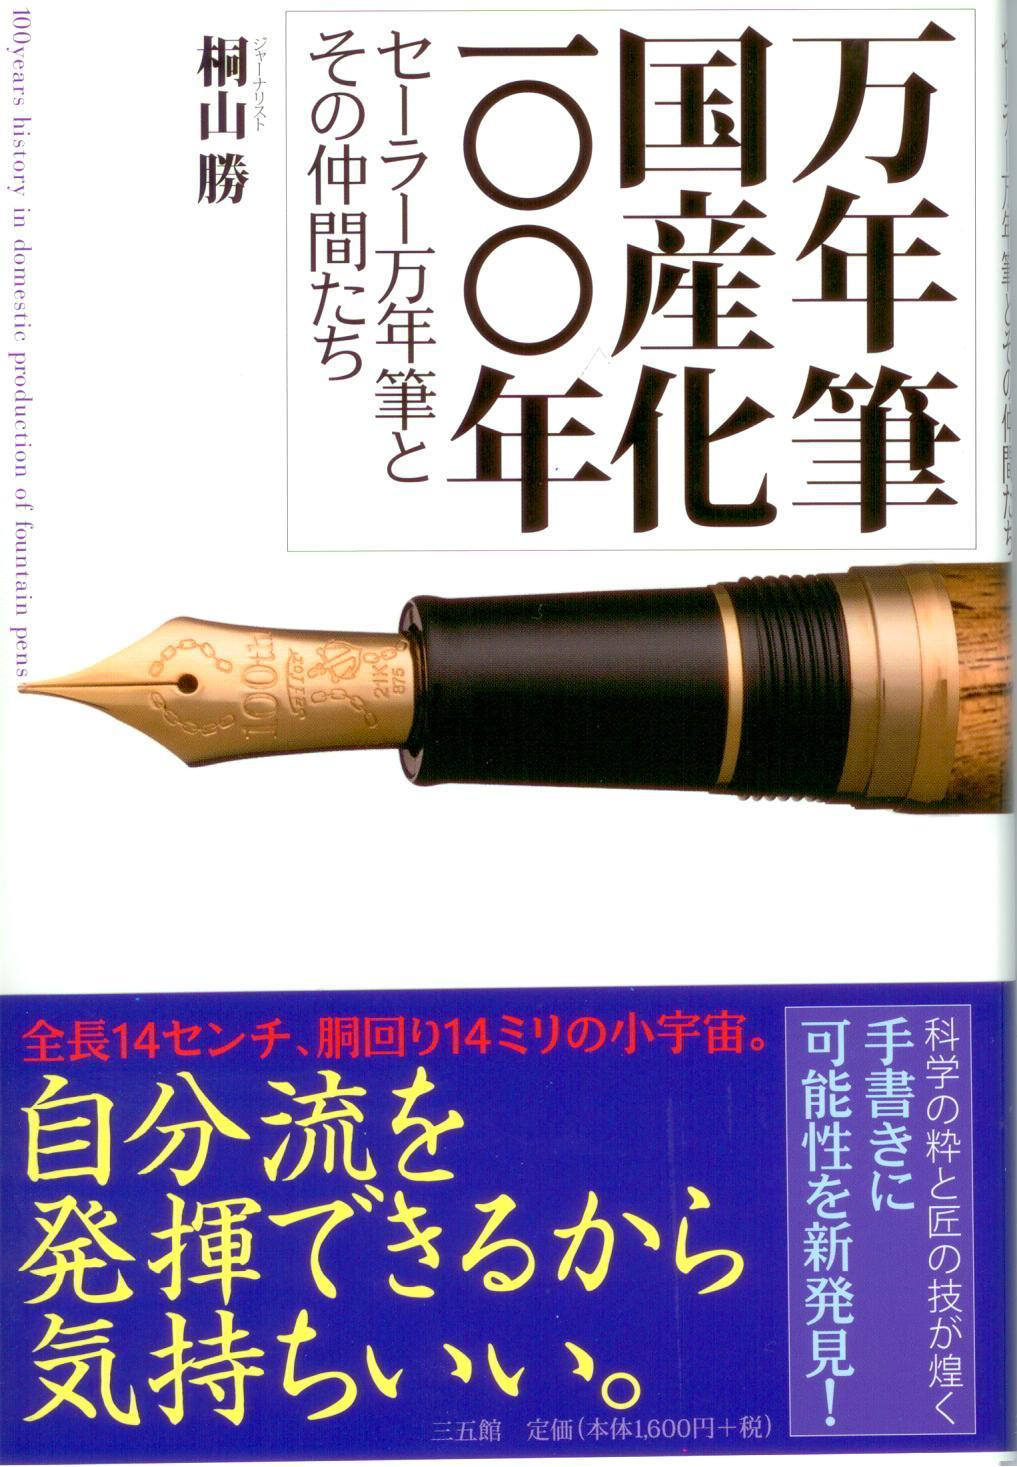 100 Years History in Domestic Production of Fountain Pens